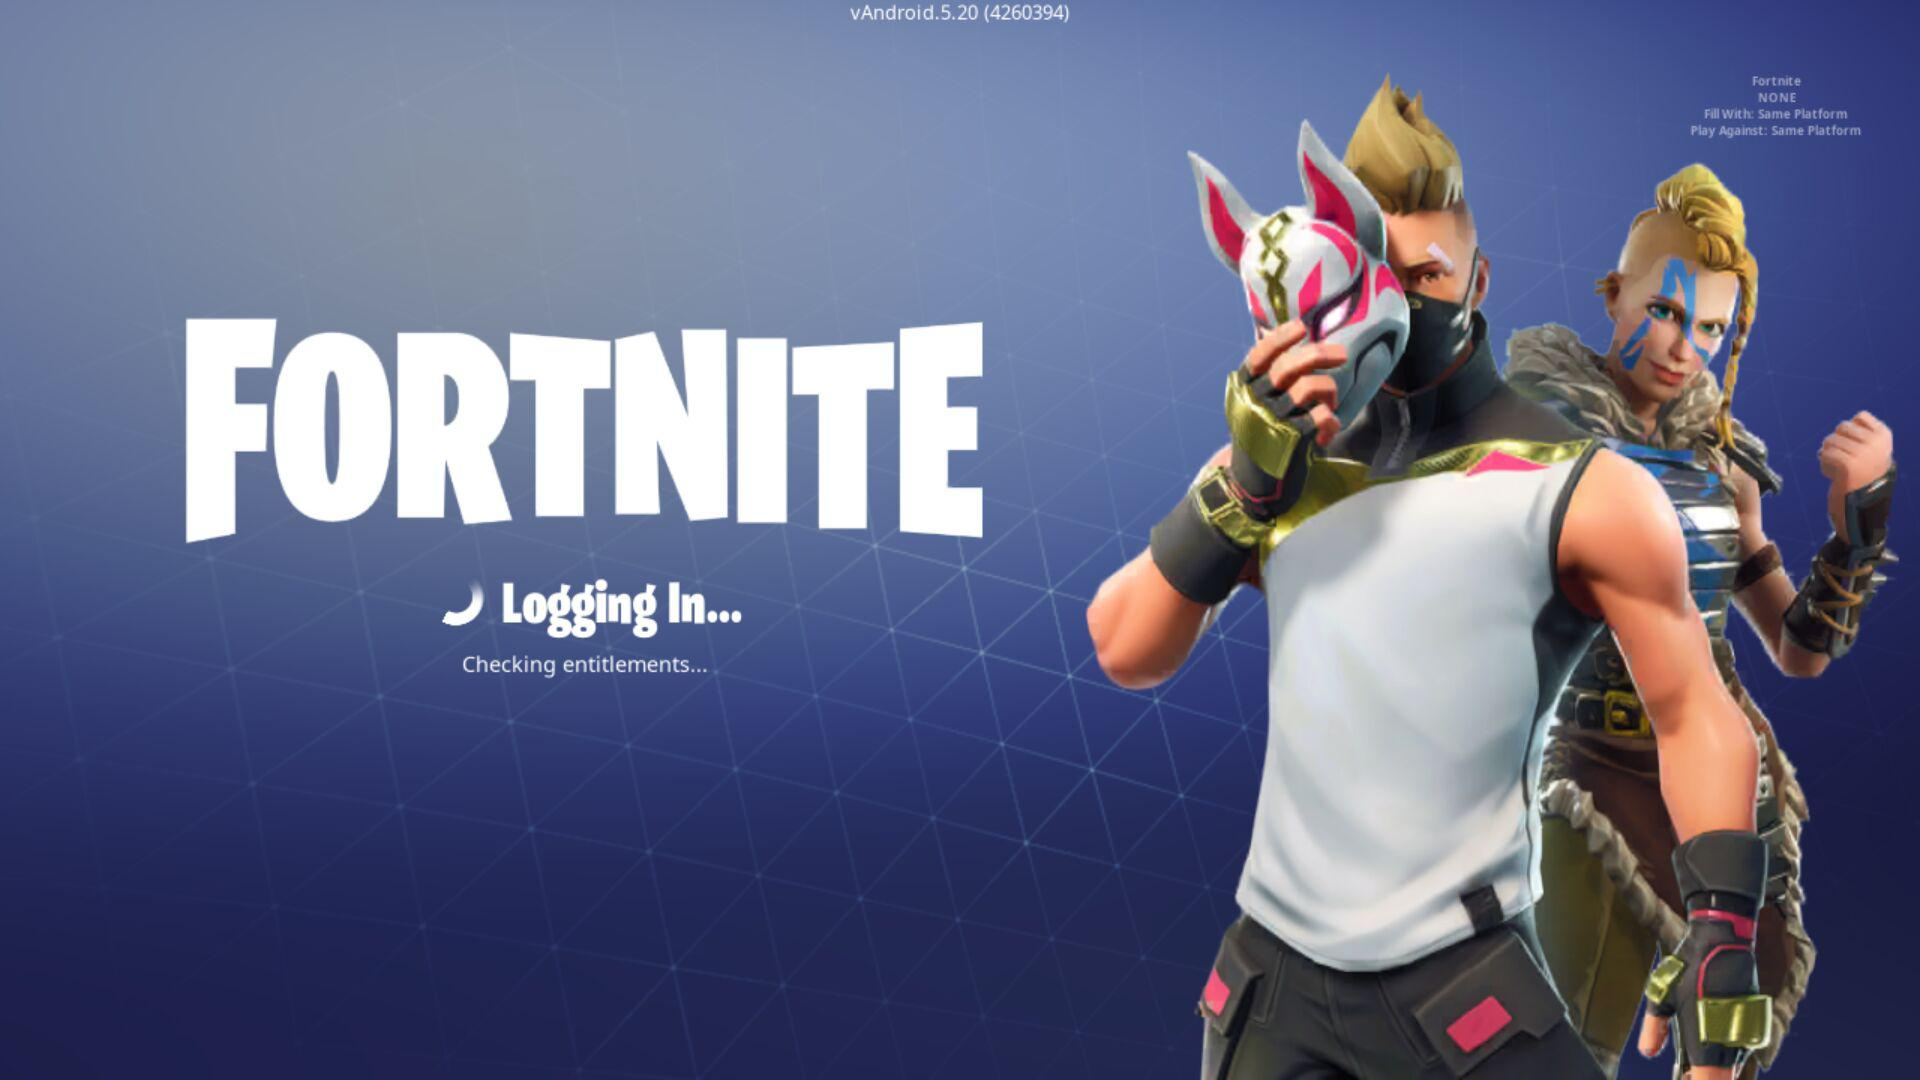 Fortnite 6.02.0-4440378-Android Screen 3